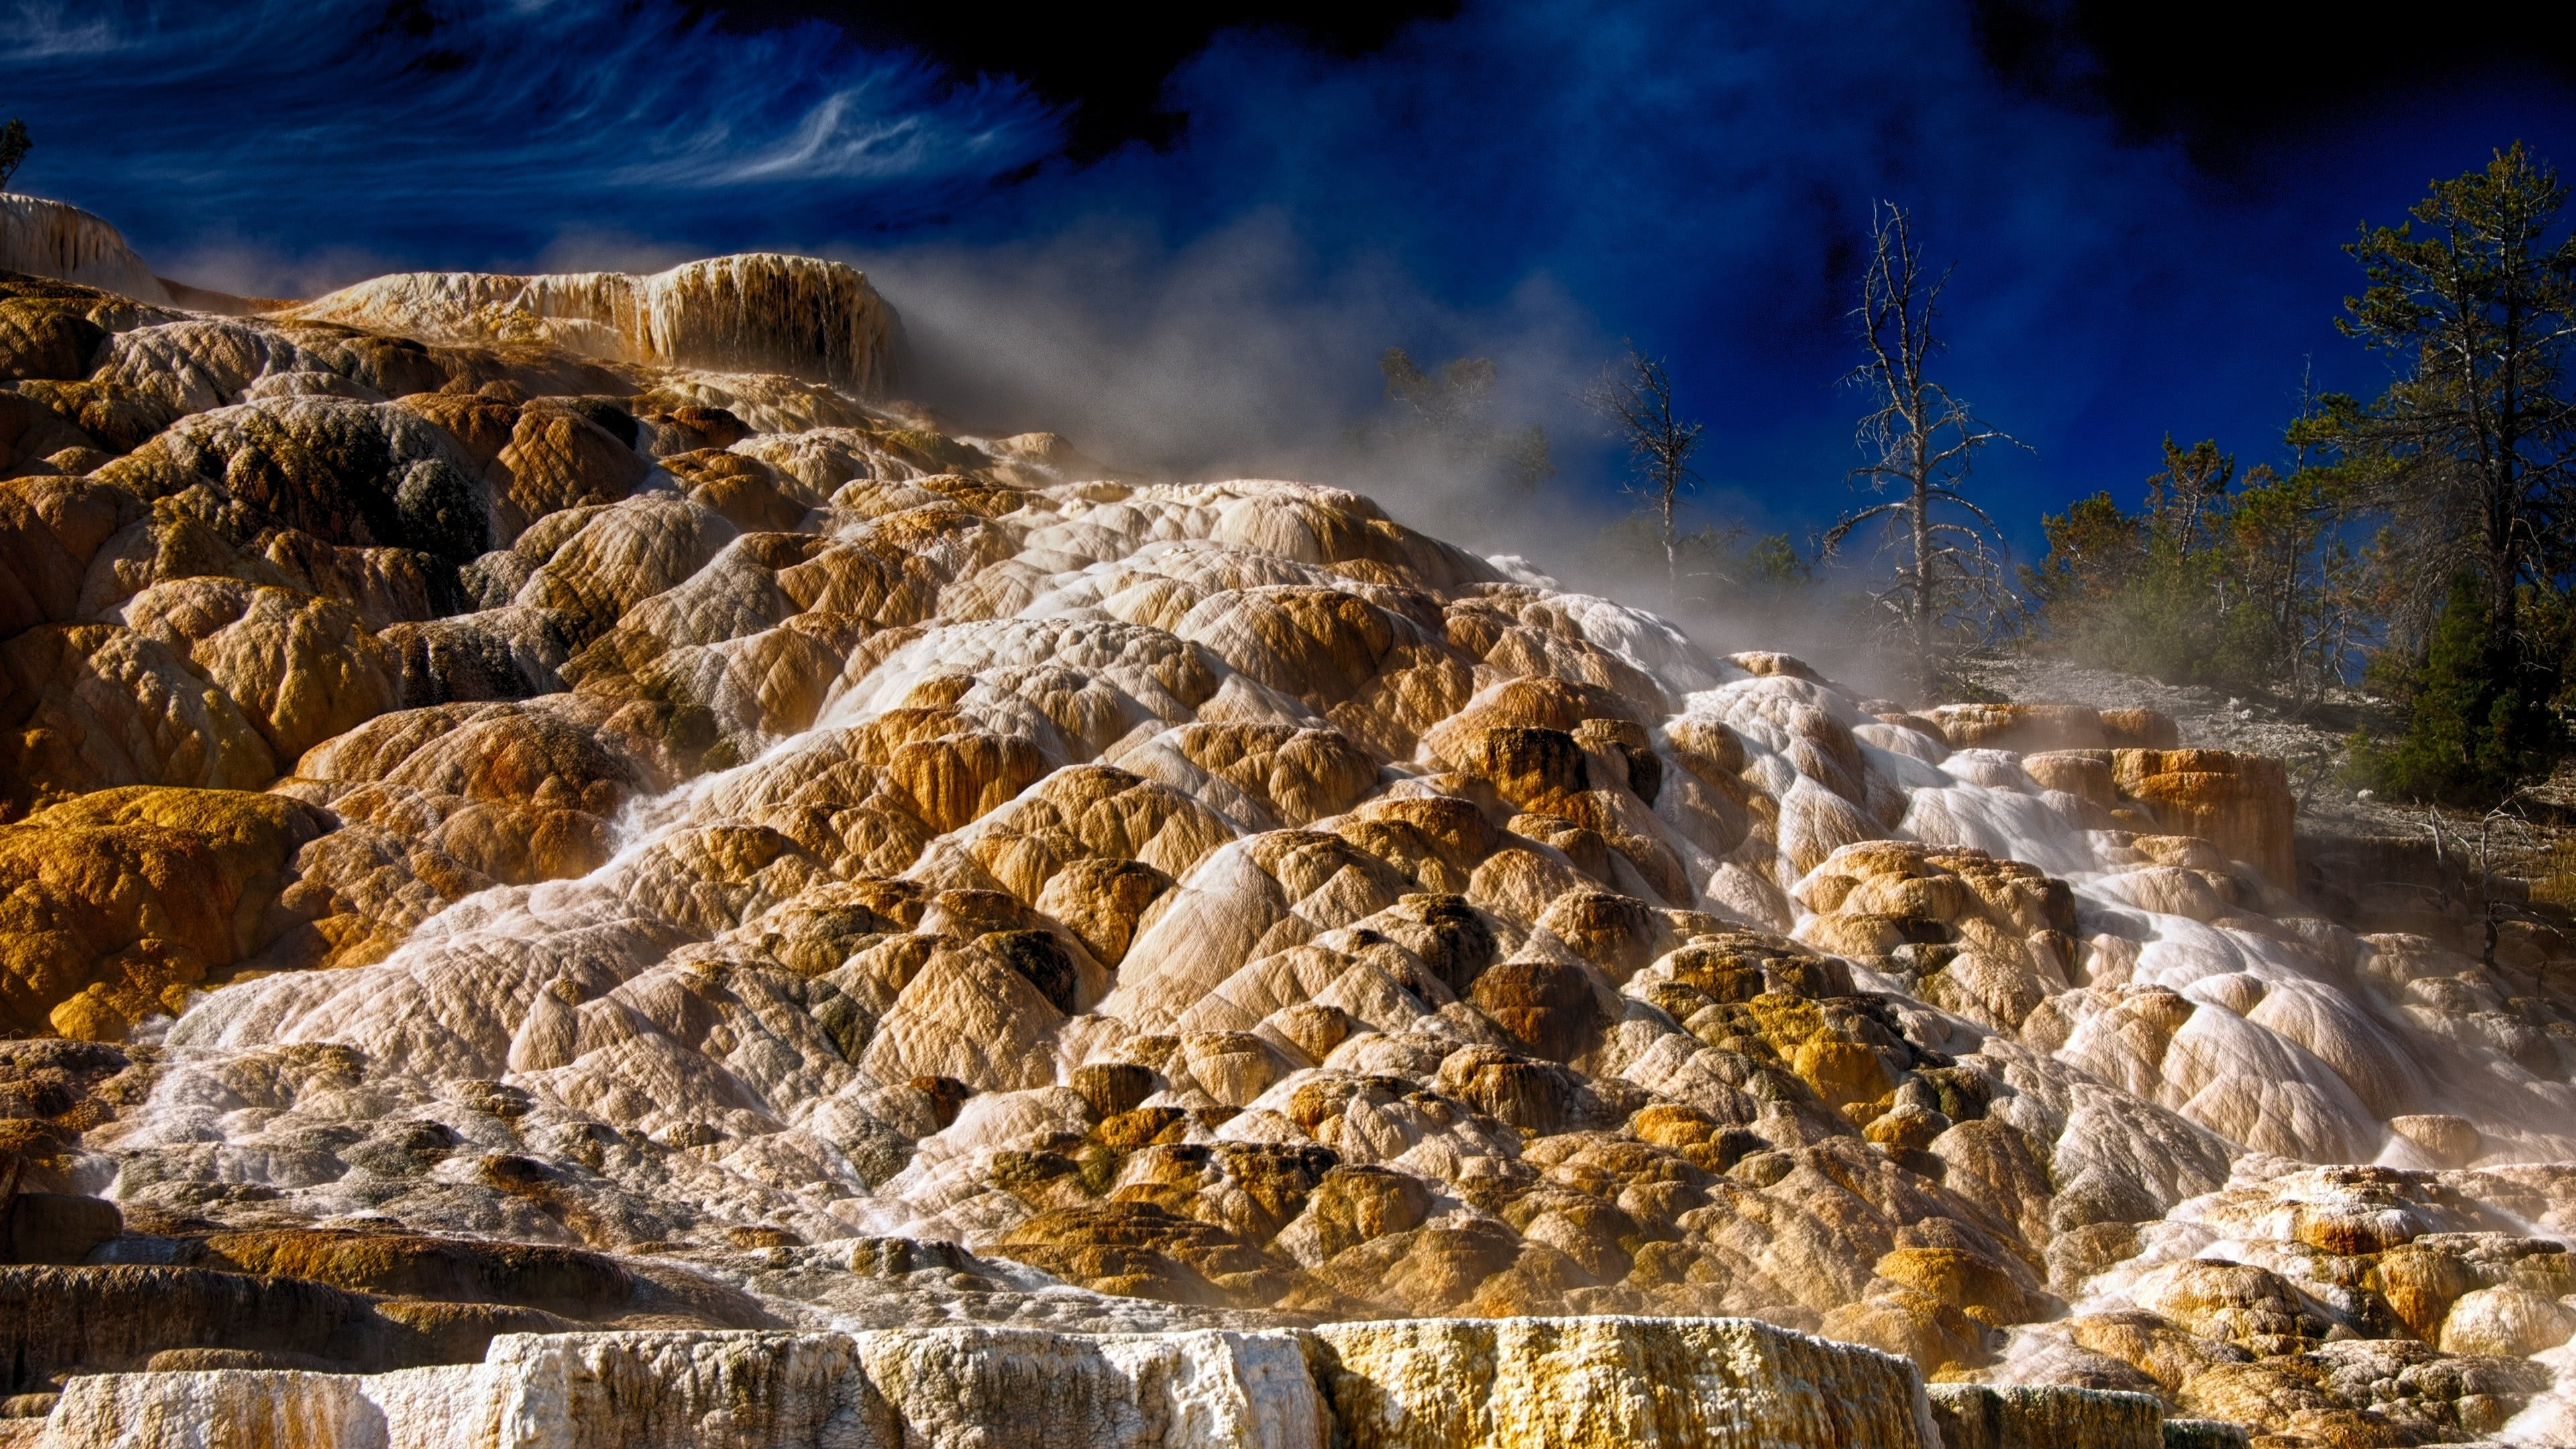 Ultra Hd Wallpapers Cars Mammoth Hot Springs Yellowstone National Park Wyoming Uhd